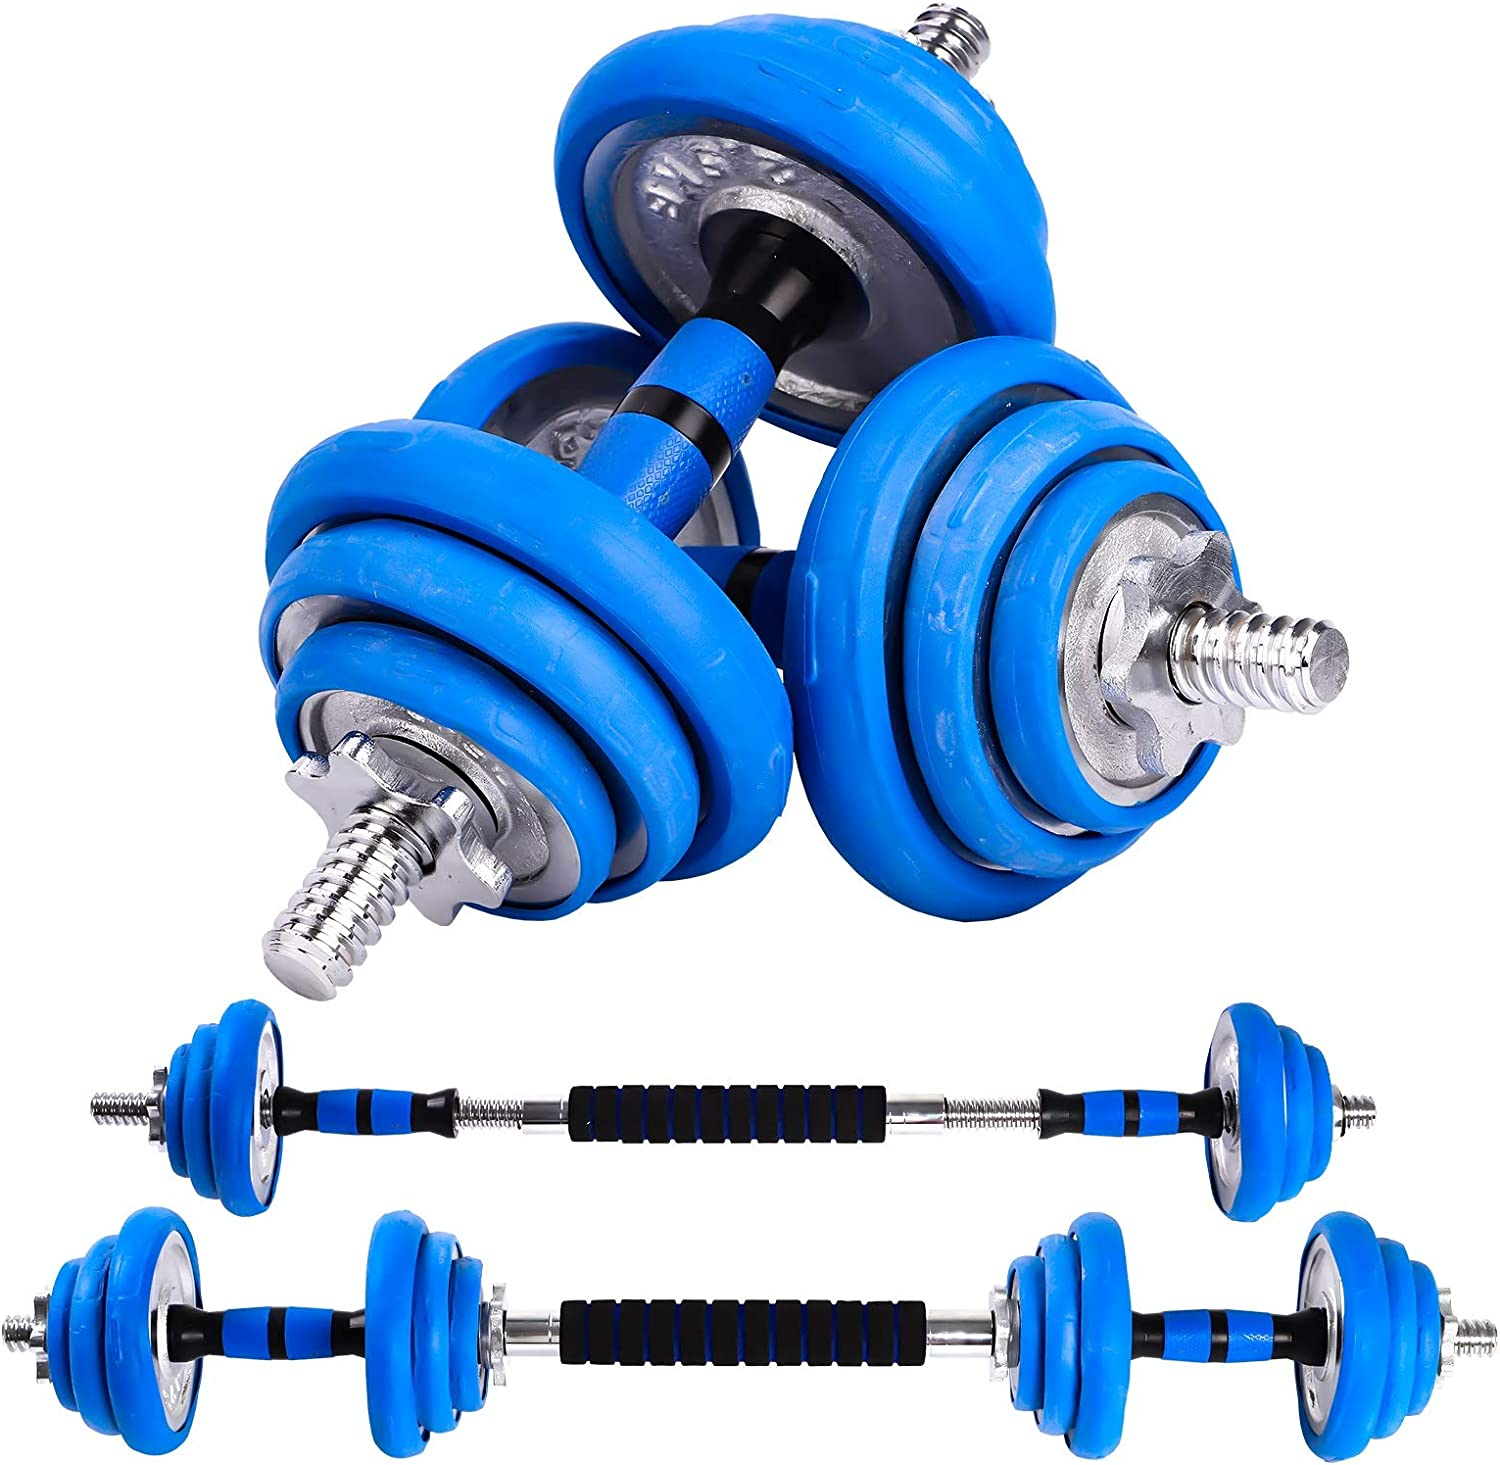 SUWLIN Adjustable Dumbbells Set – Selling 2 in Dumbbell and Barbe 1 New arrival